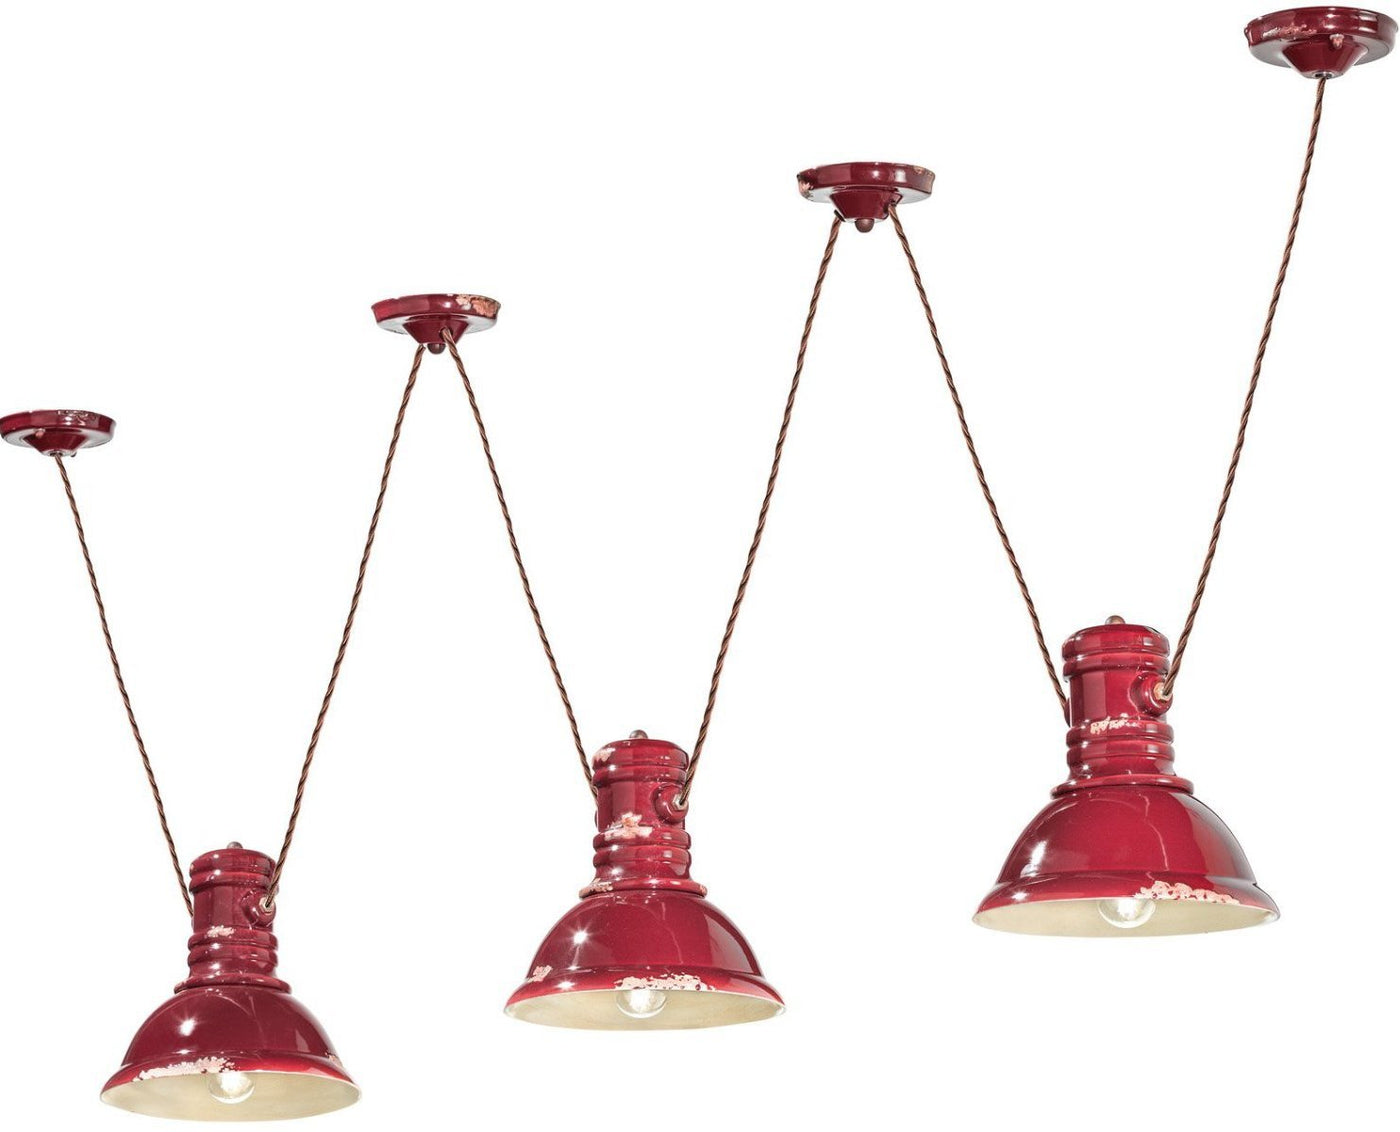 C1692 Industrial 3-light pendant